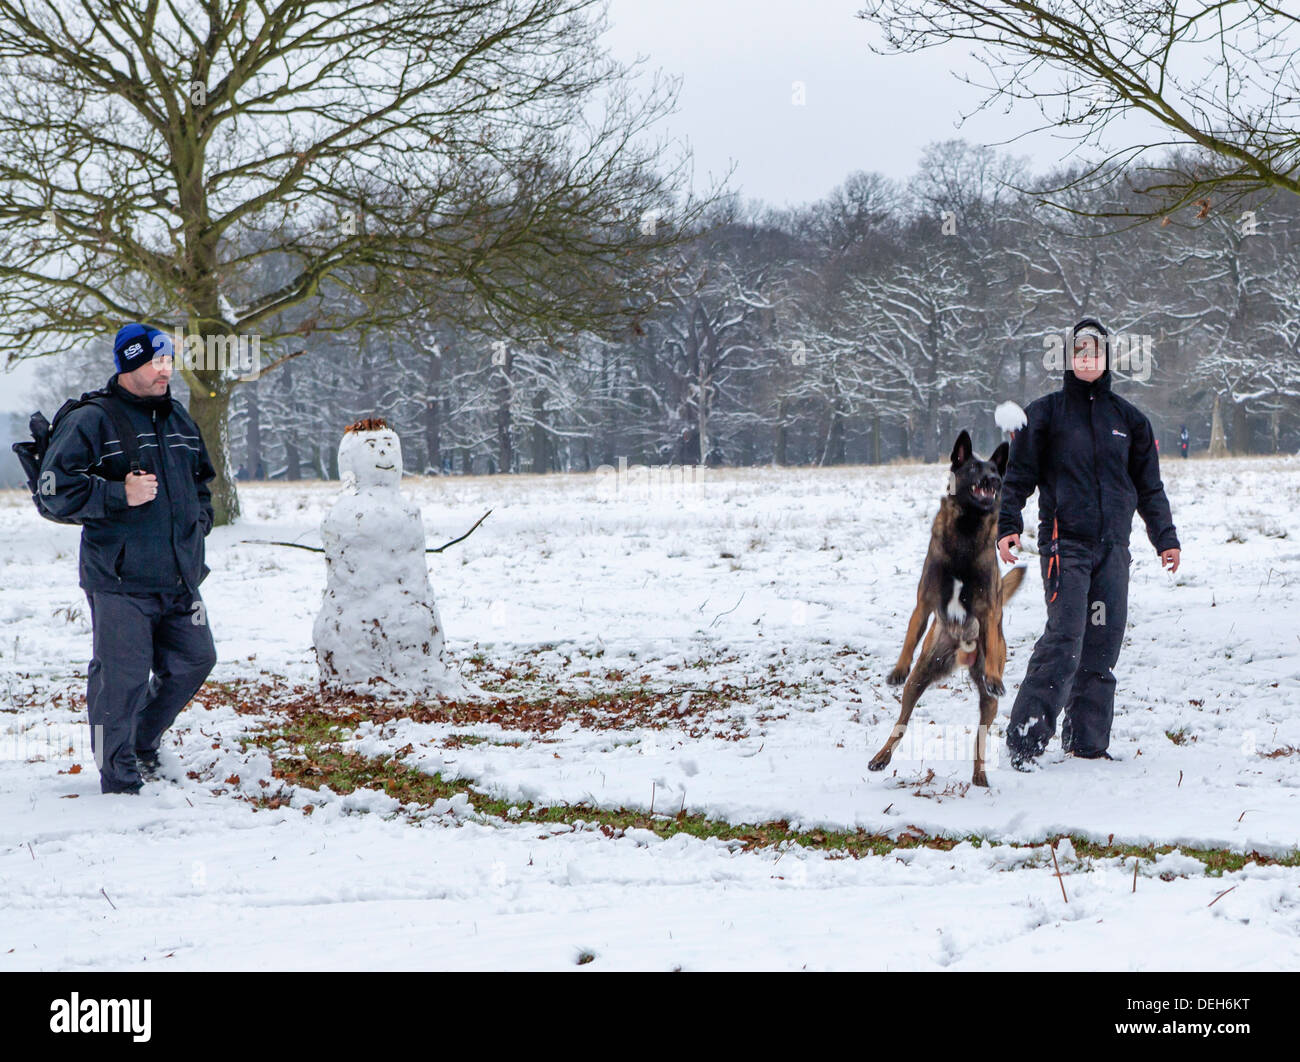 Young couple build snowman and throw snowball for dog to catch in Richmond park after a winter snowfall - Richmond - Stock Image